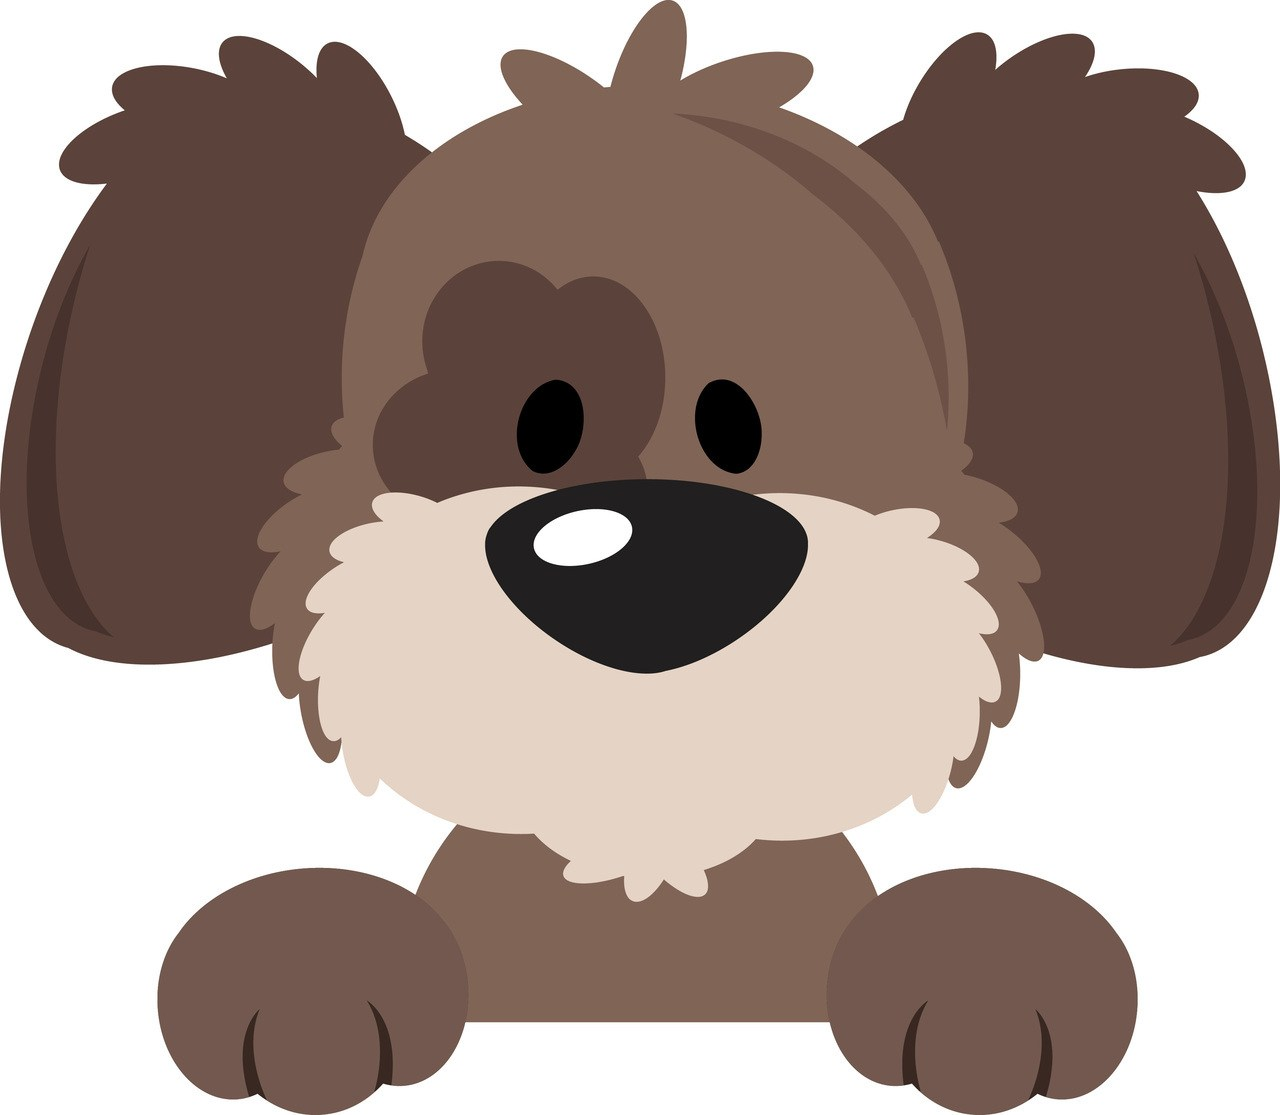 Cute puppies clipart 7 » Clipart Portal.